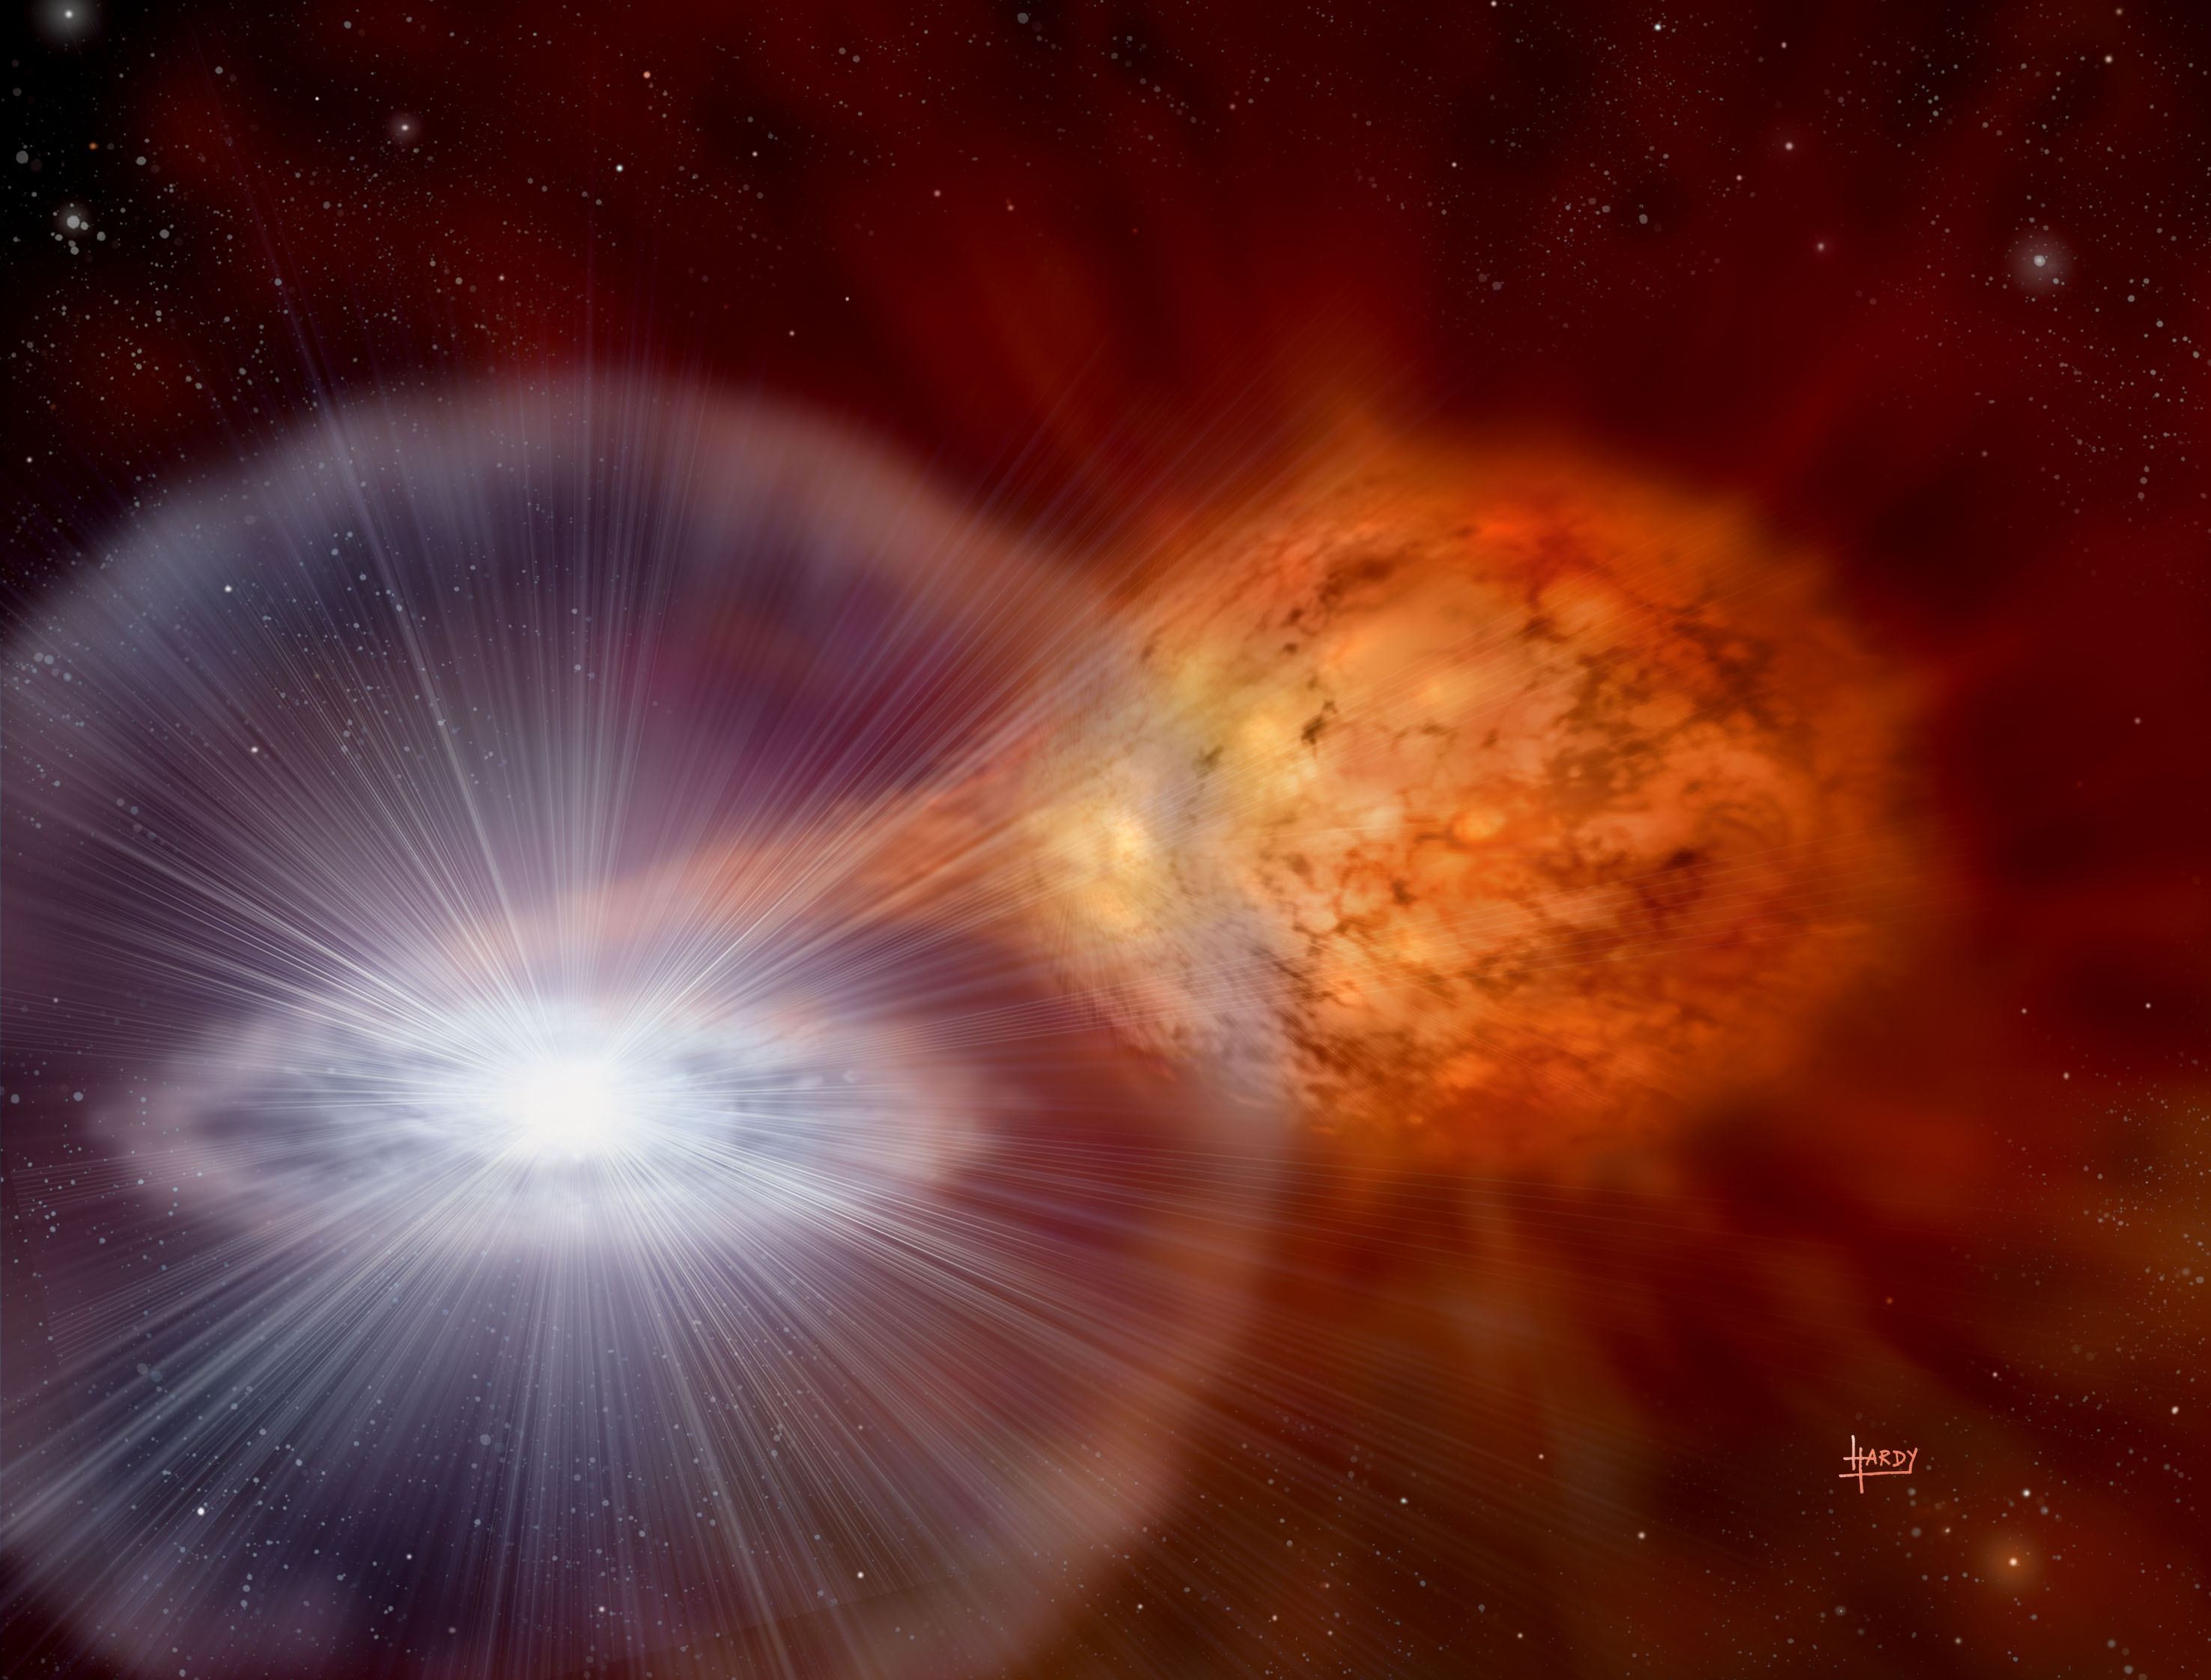 A white dwarf accreting material from a non-degenerate companion. Copyright: David A. Hardy/AstroArt.org.